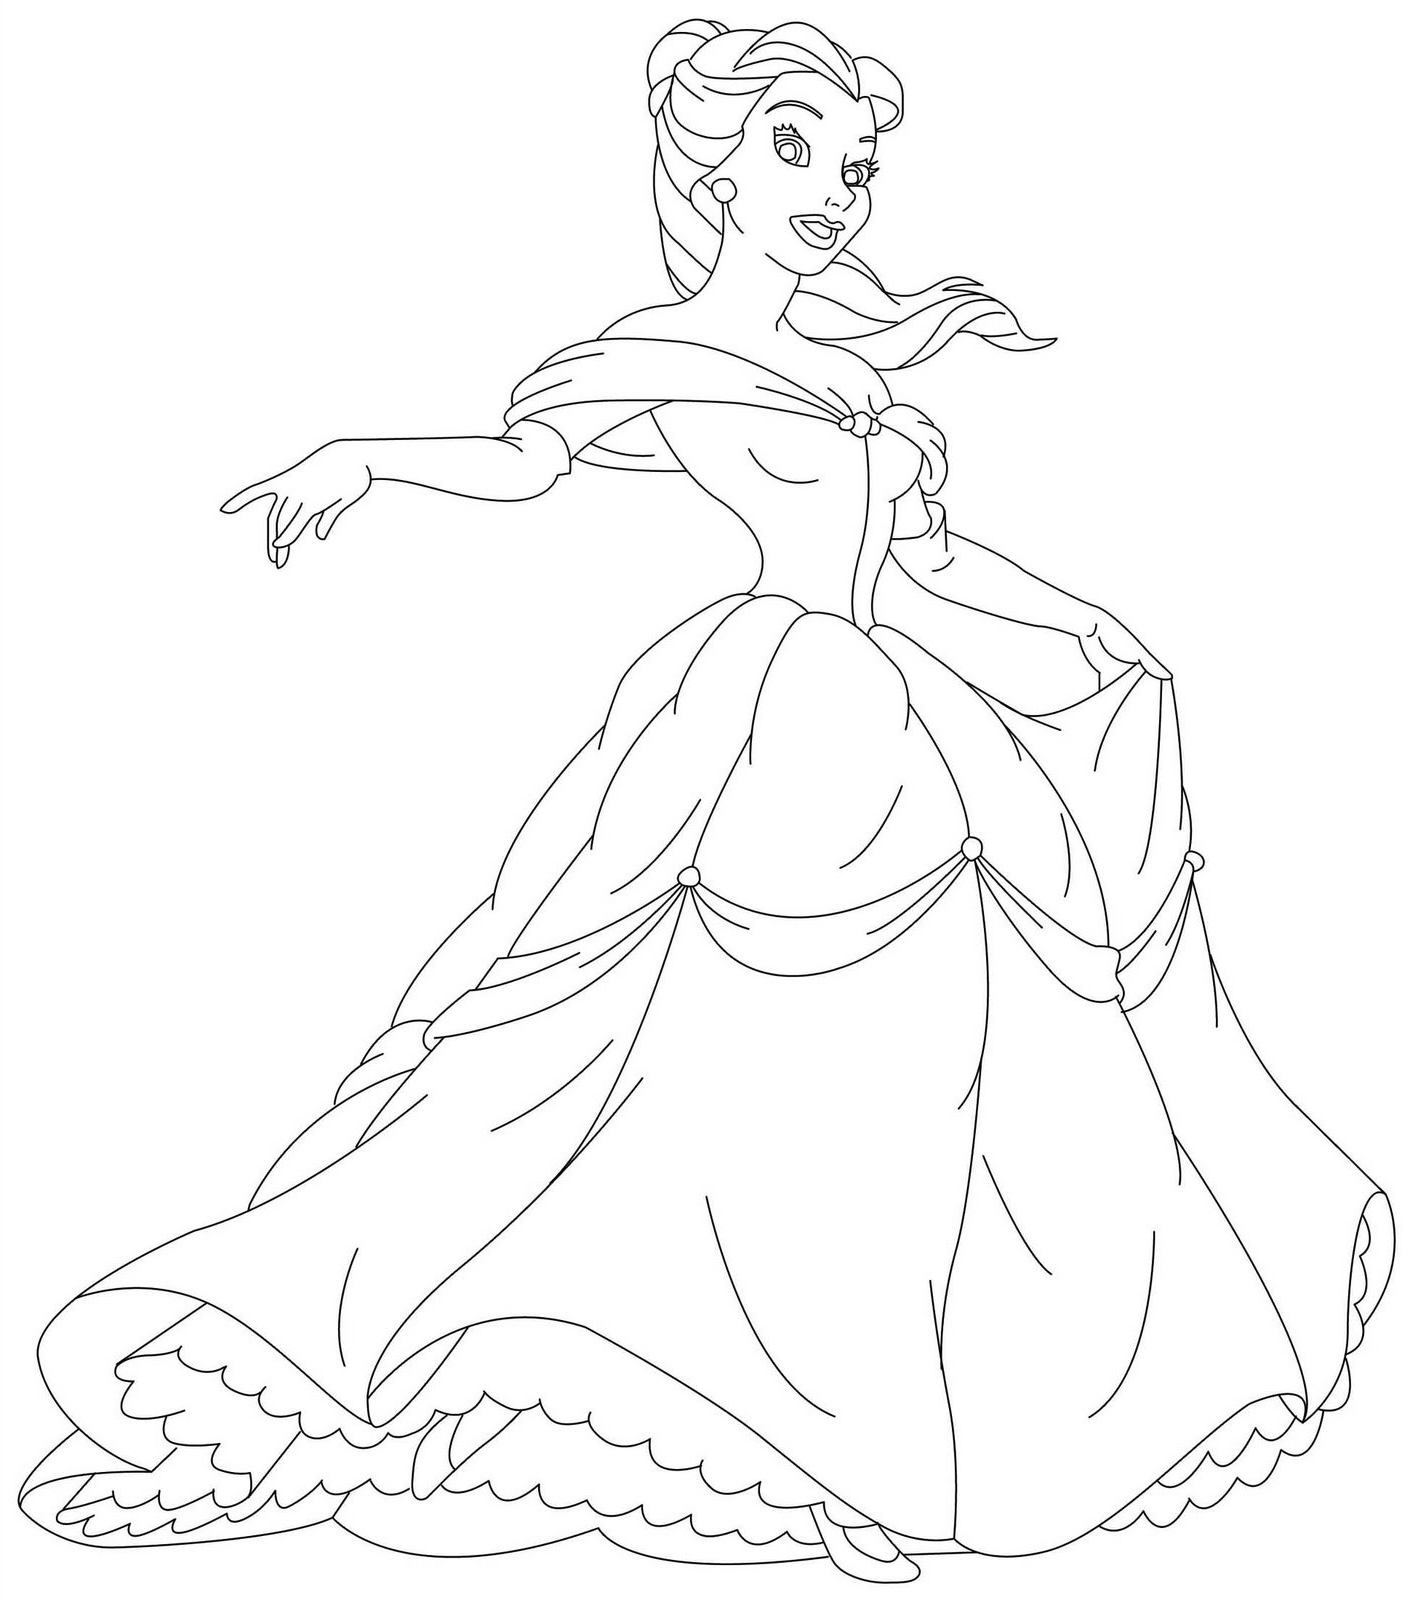 Free printable disney princess coloring pages for kids for Coloring pages online